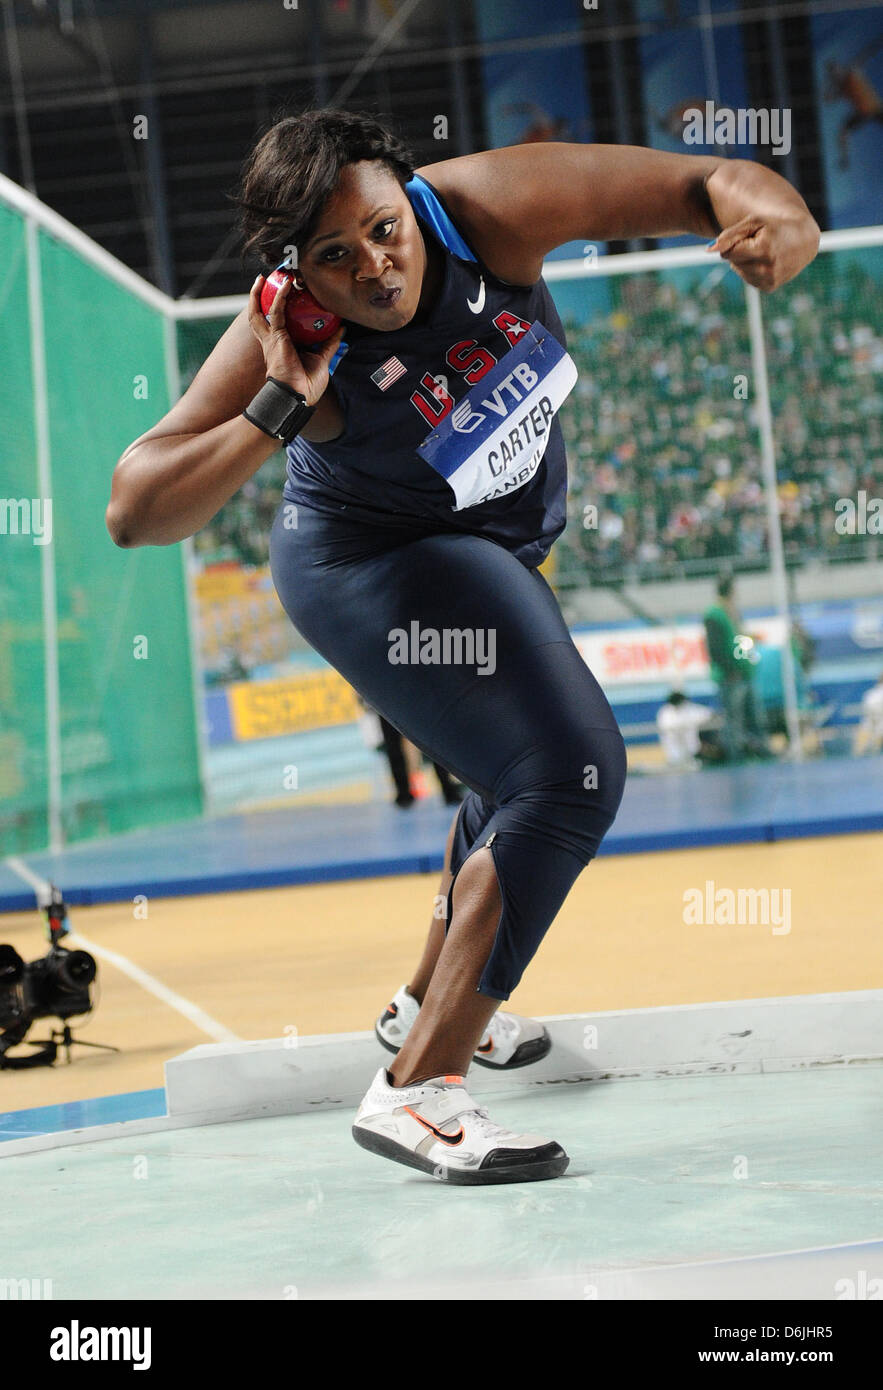 Michelle Carter Athlete >> American Athlete Michelle Carter Competes In The Women S